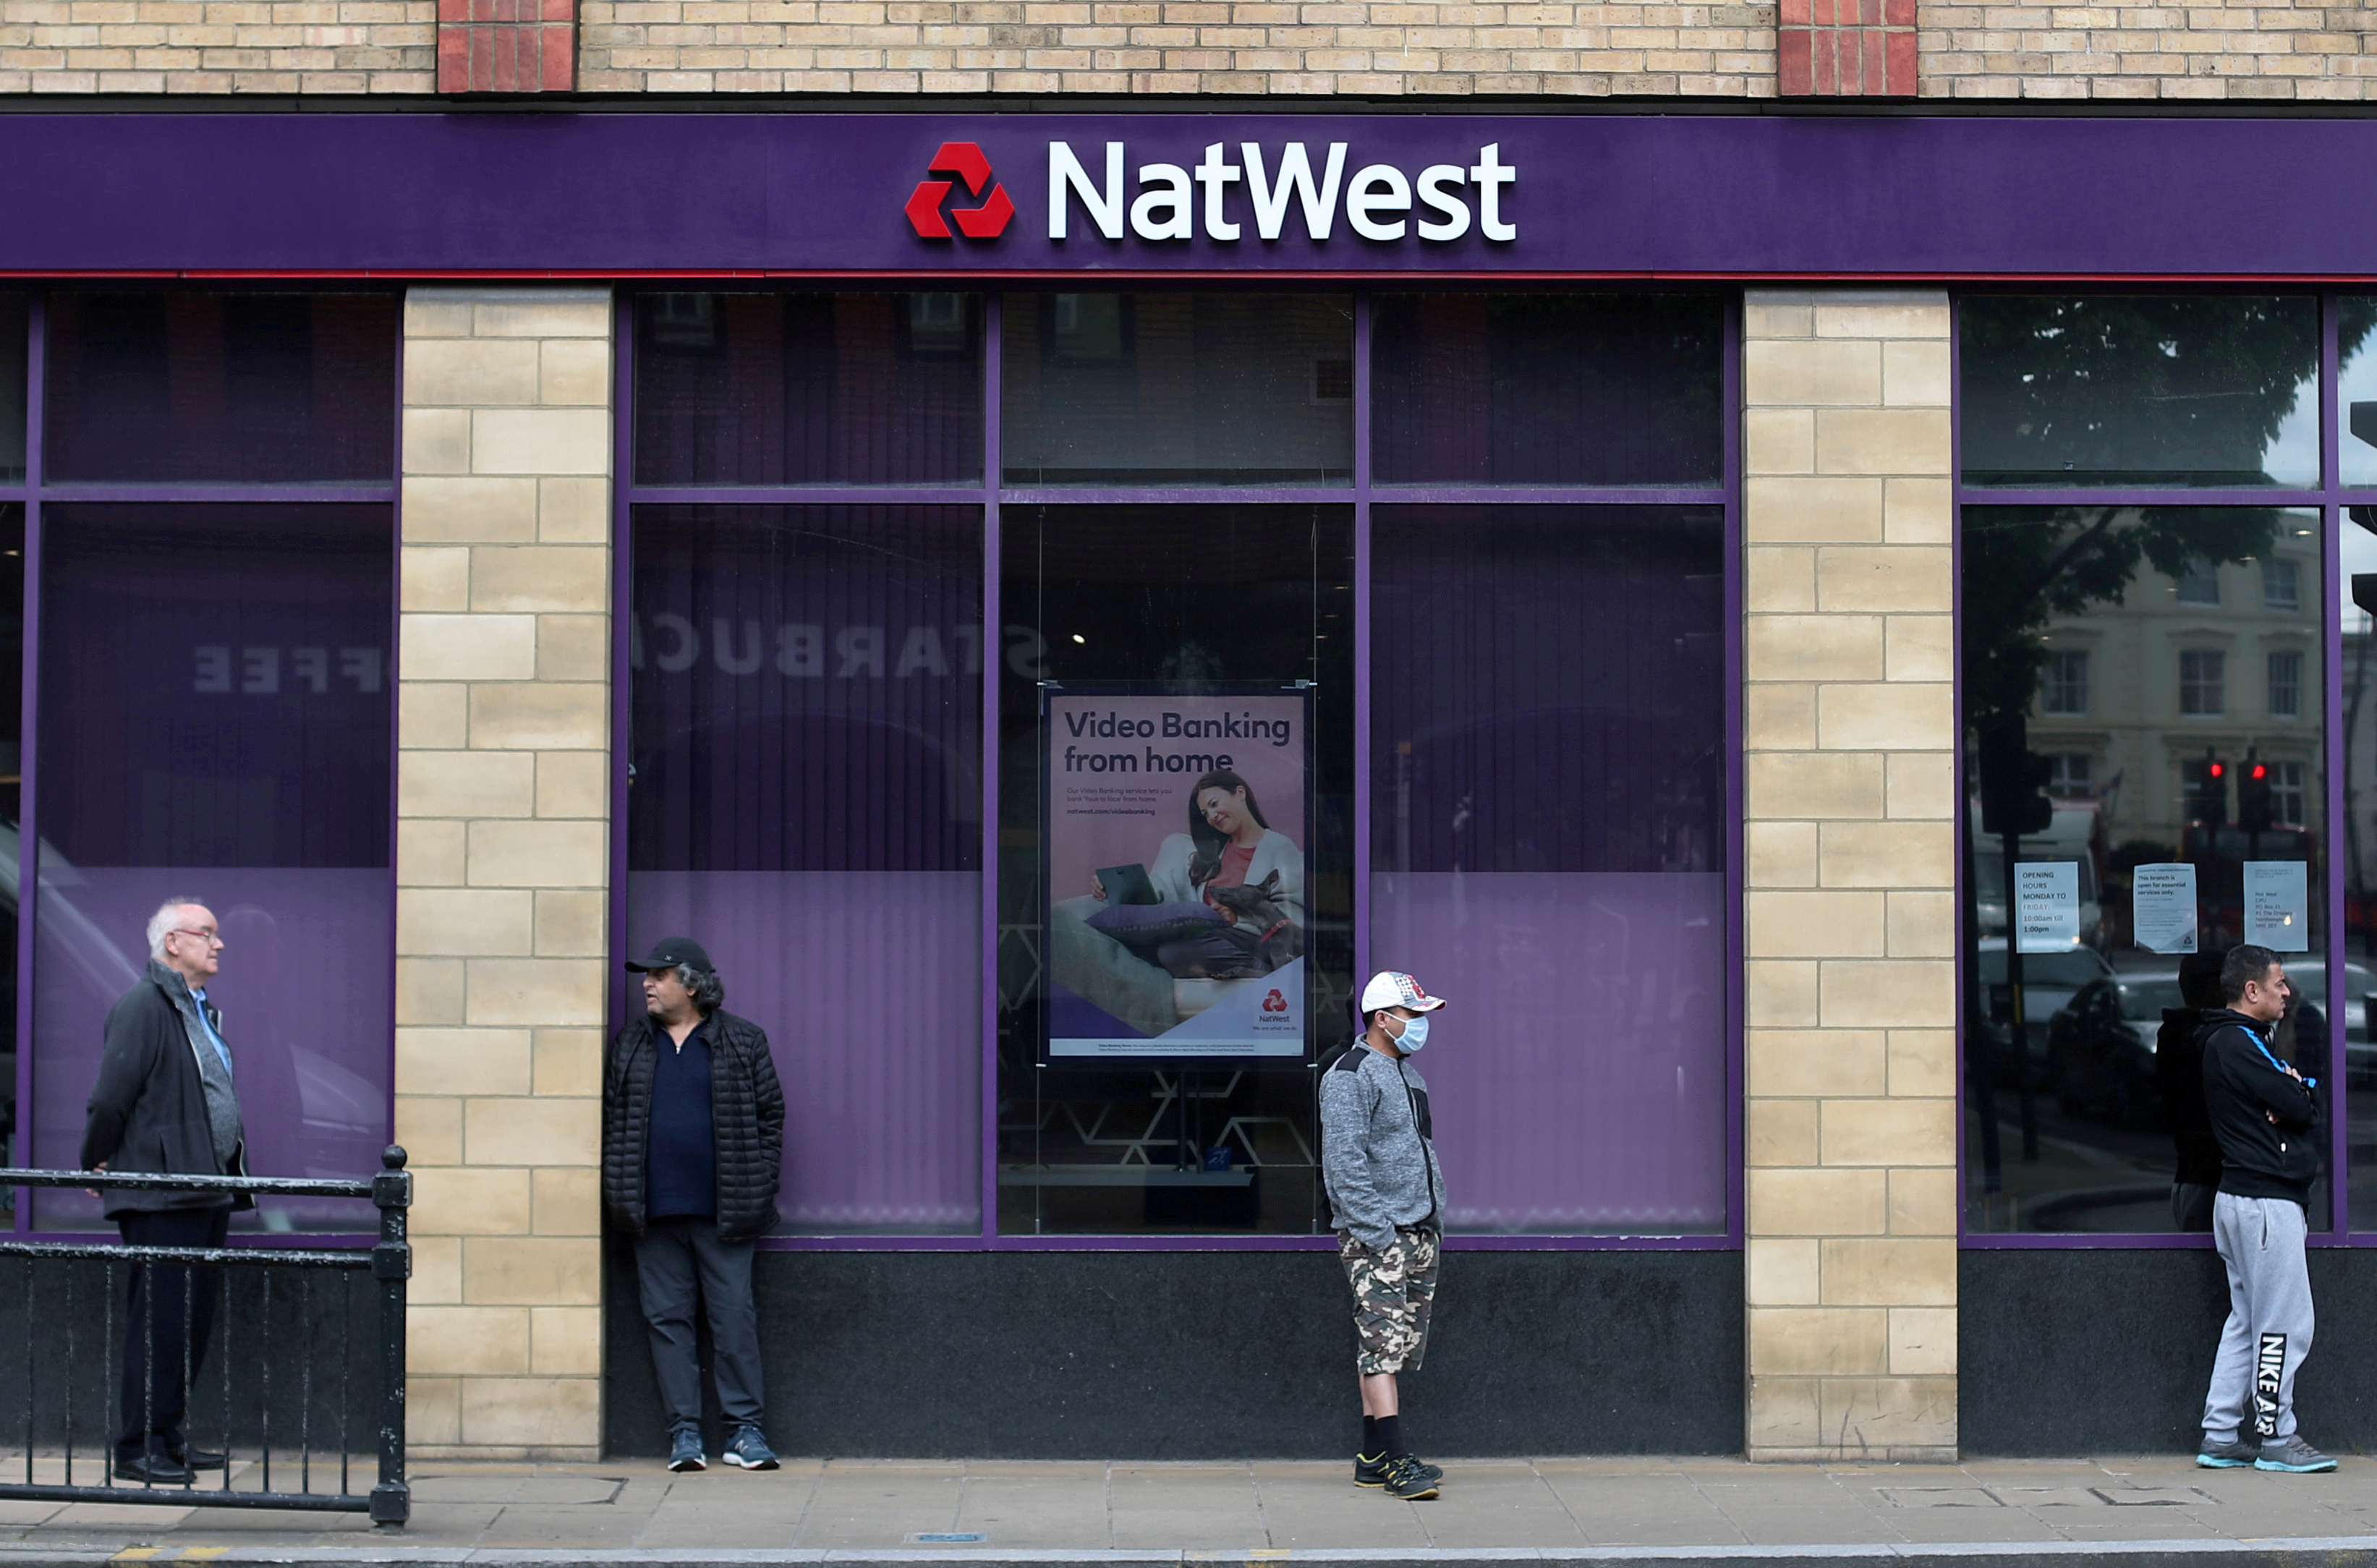 People maintain social distance while they queue outside a Natwest bank in Wimbledon in London, Britain, May 1, 2020. REUTERS/Hannah McKay/File Photo